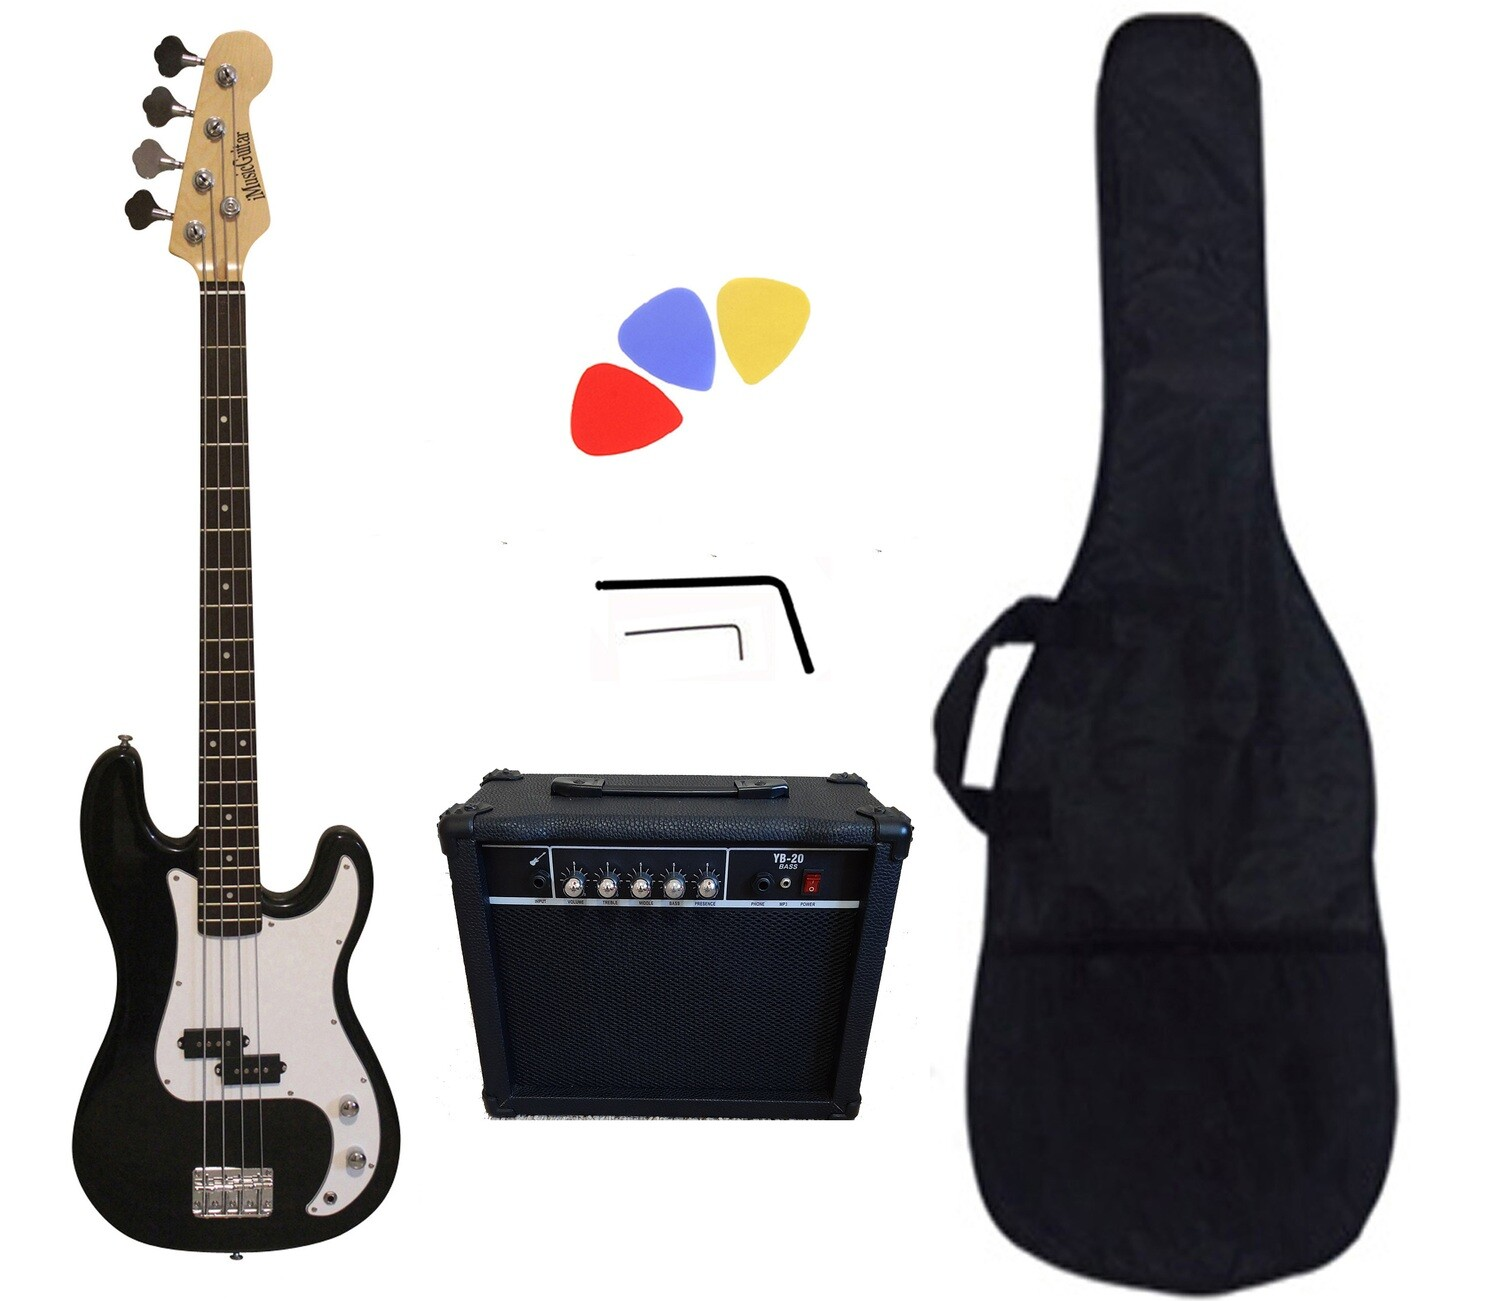 Bass Guitar 20W Amp Package Black for Beginners PB87120